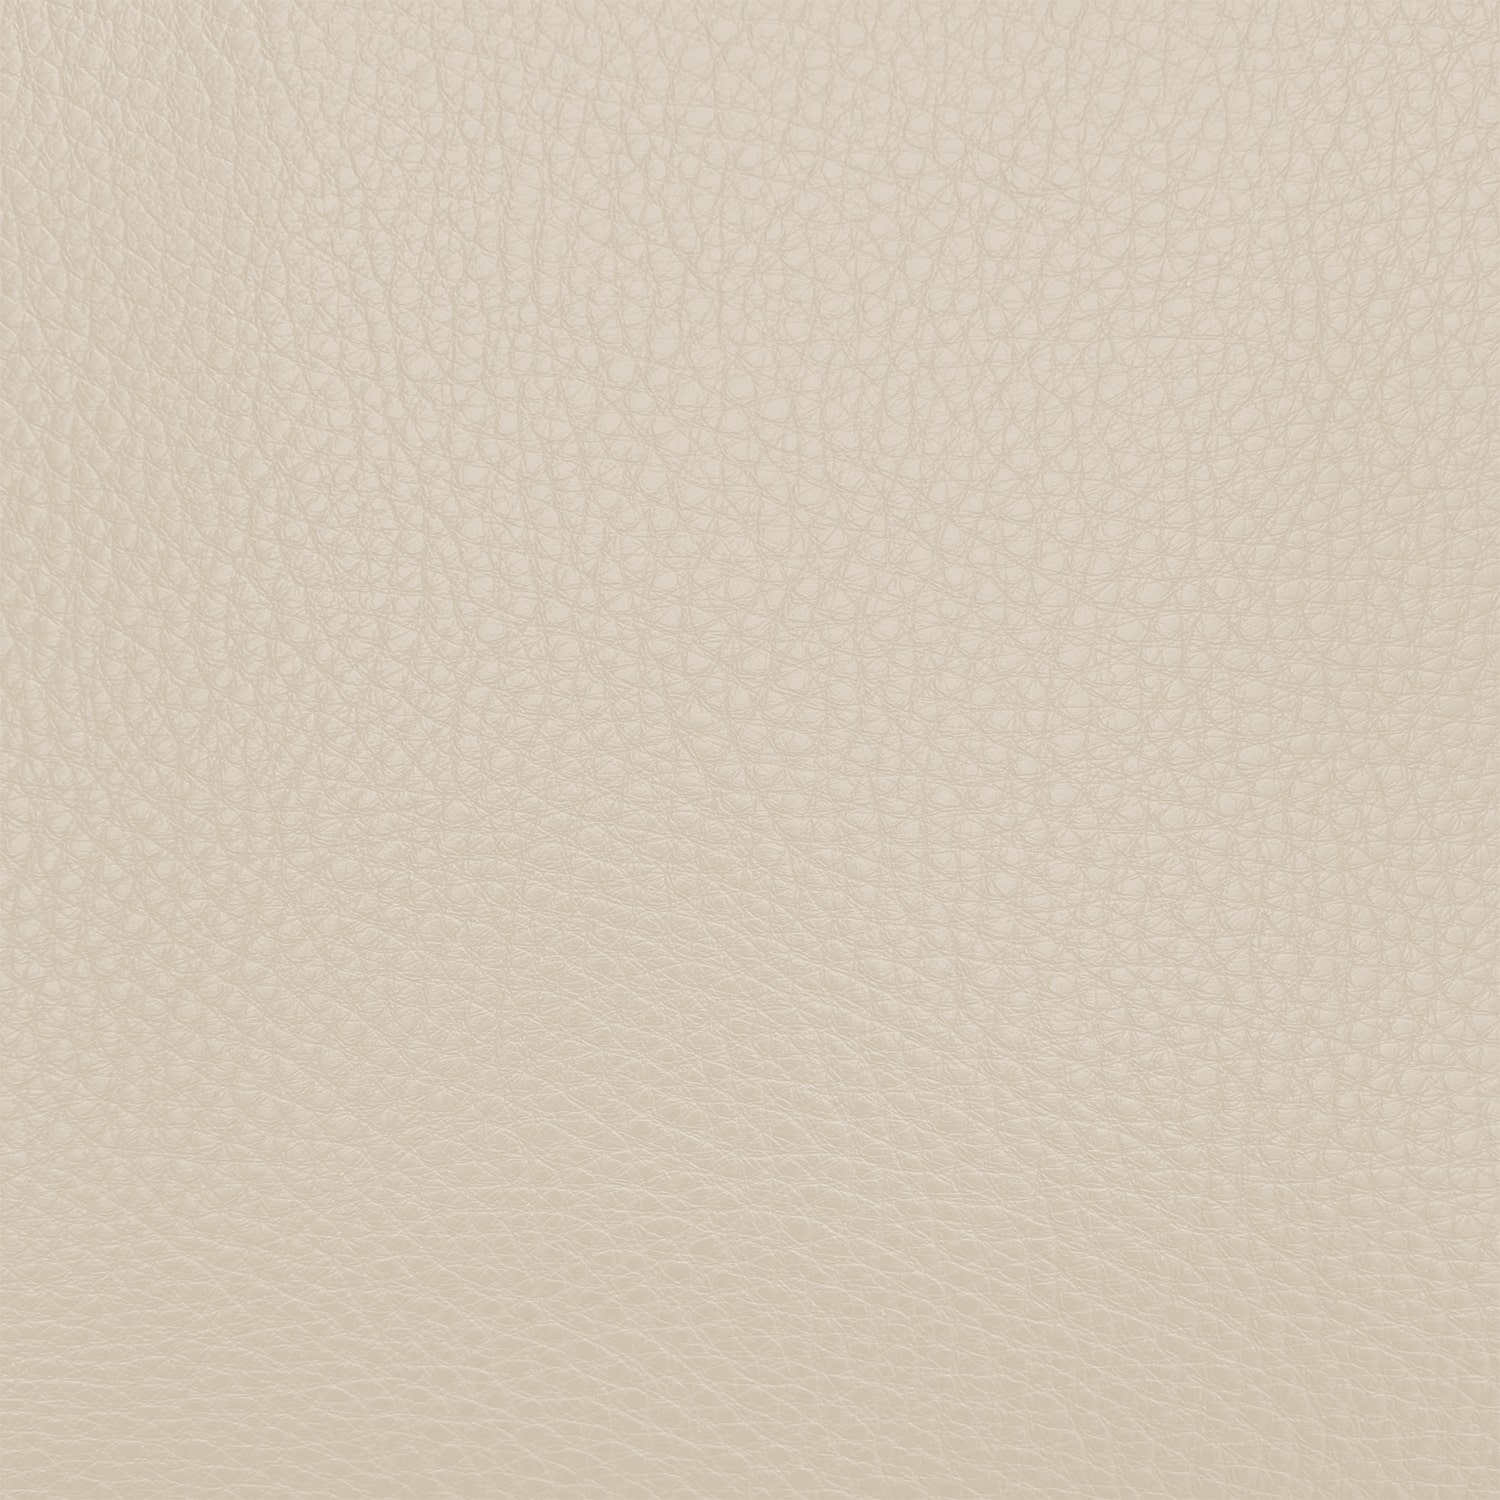 Bison: White (grade F): #BIS0030<br>Thick, soft, even coloration; medium protection